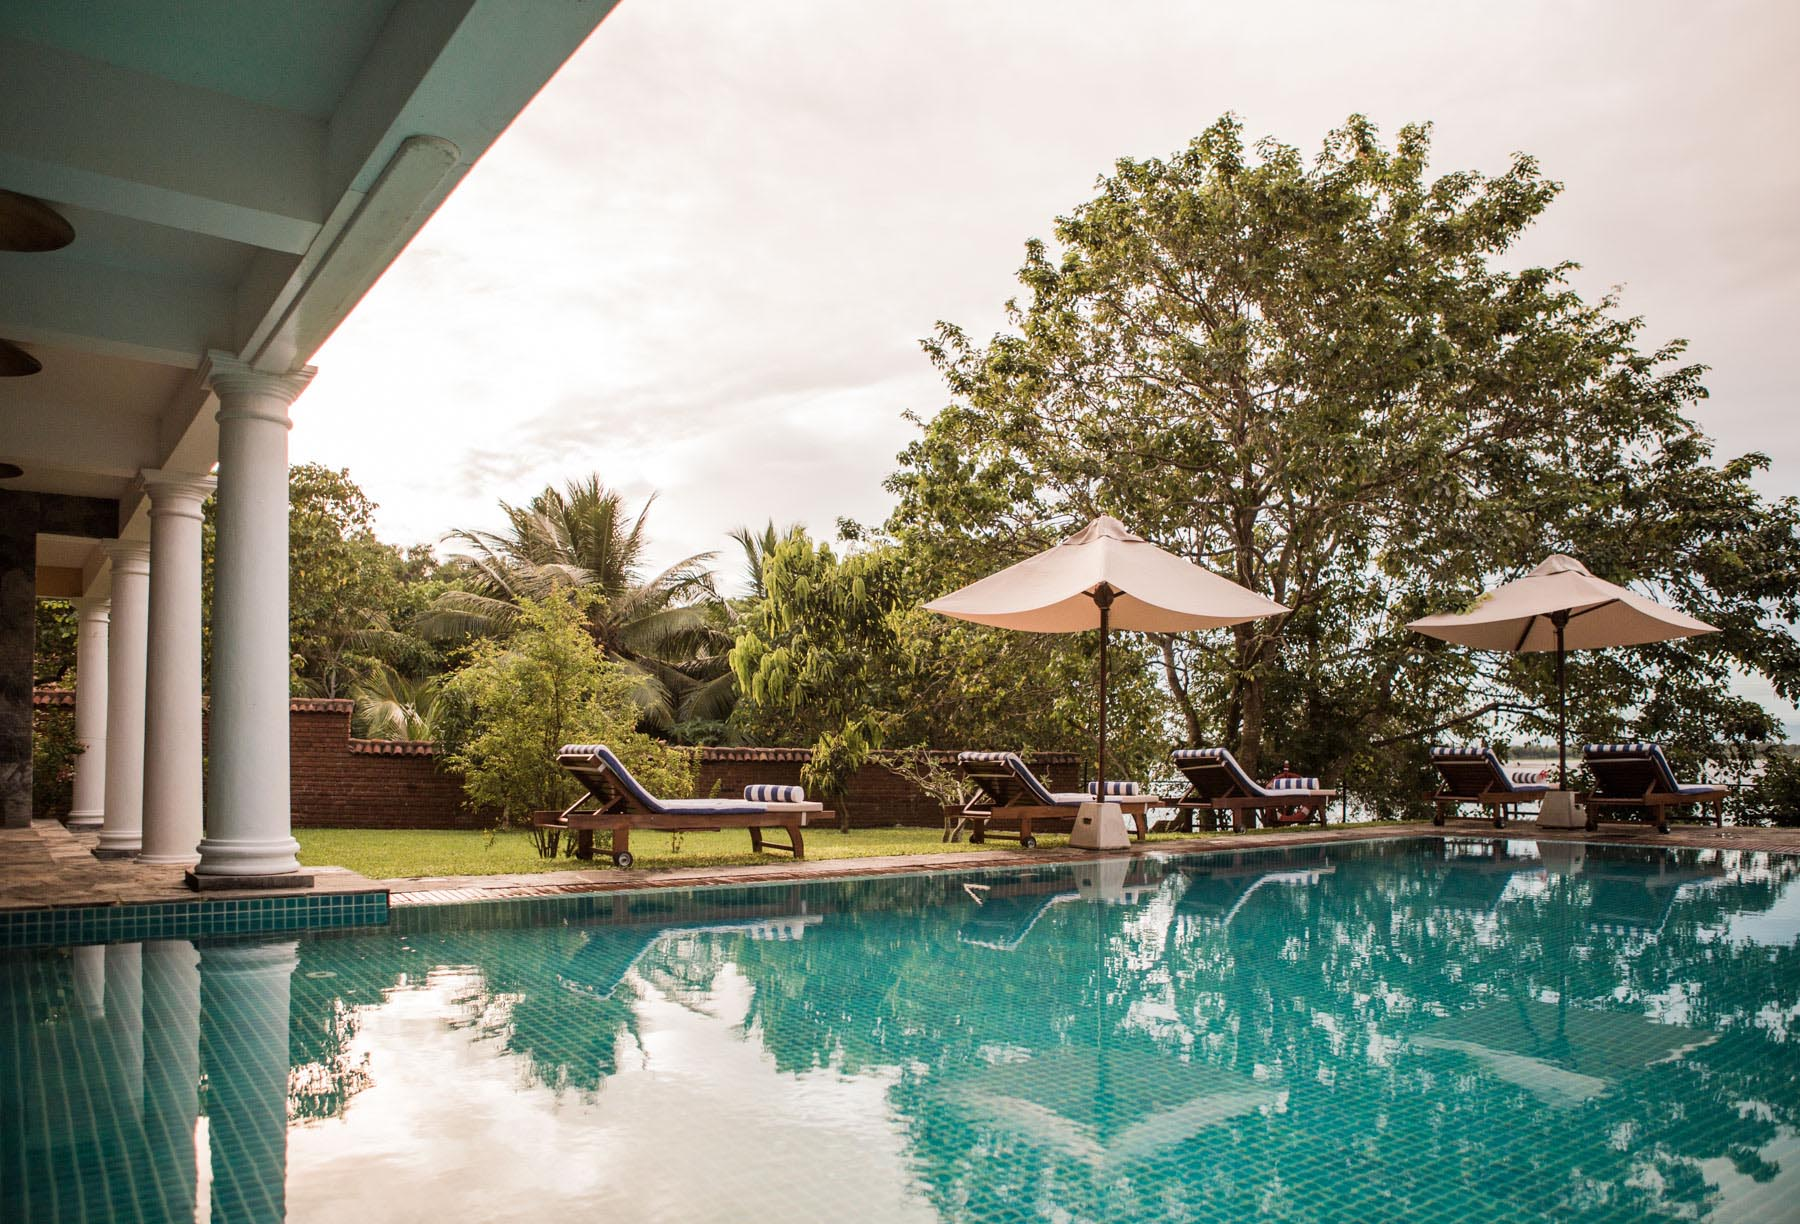 thaulle-resort-sri-lanka-the-pool